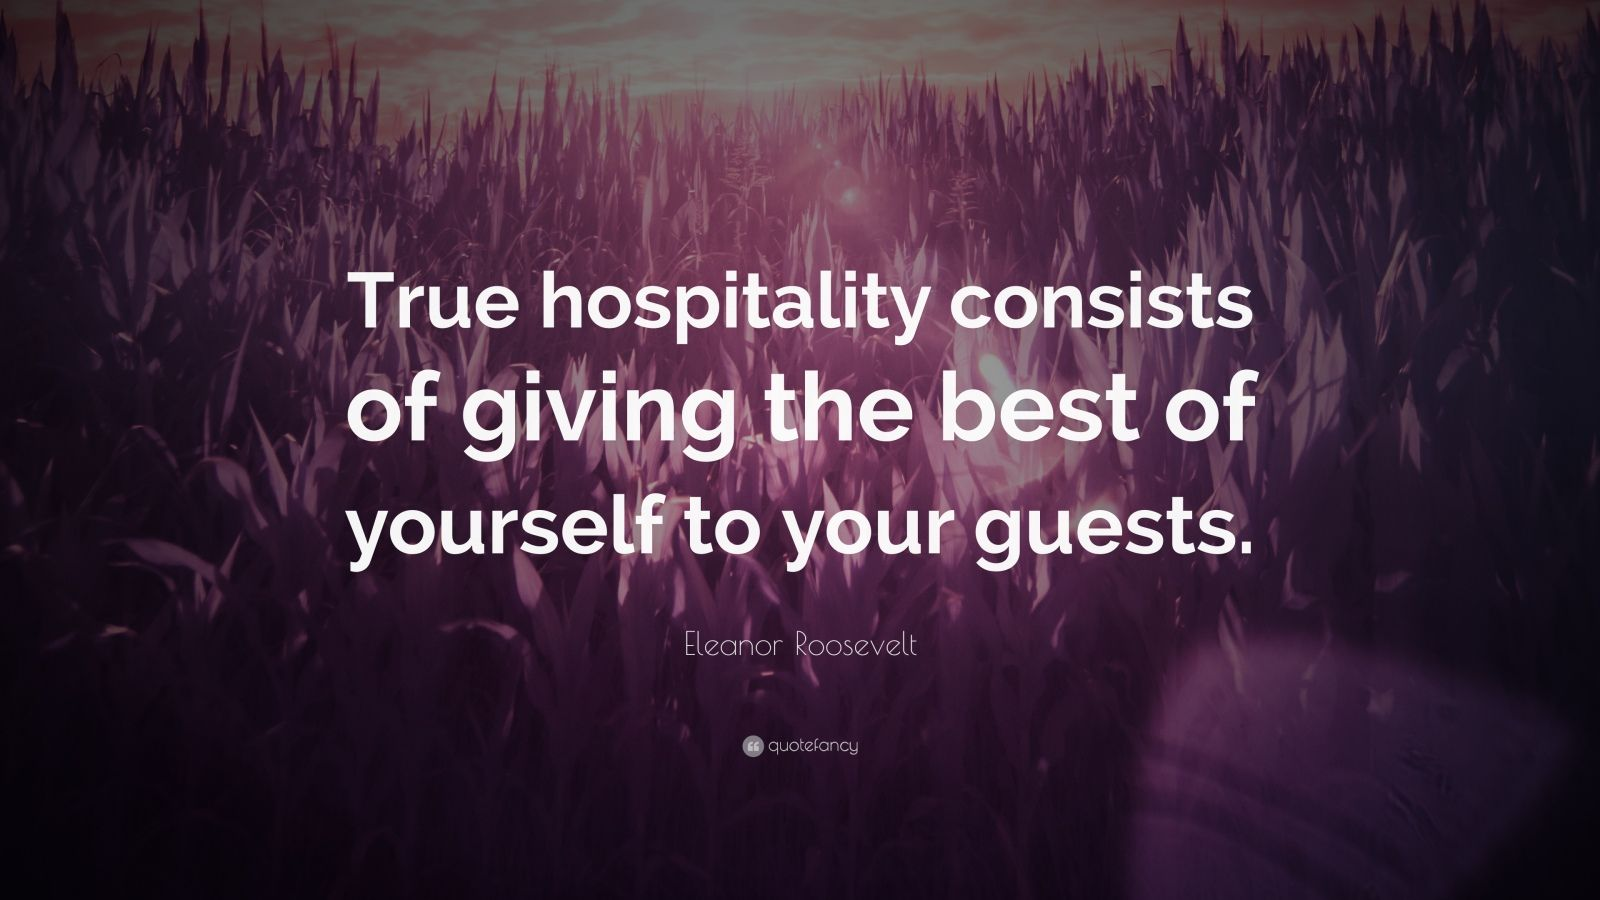 Eleanor Roosevelt Quote True Hospitality Consists Of Giving The